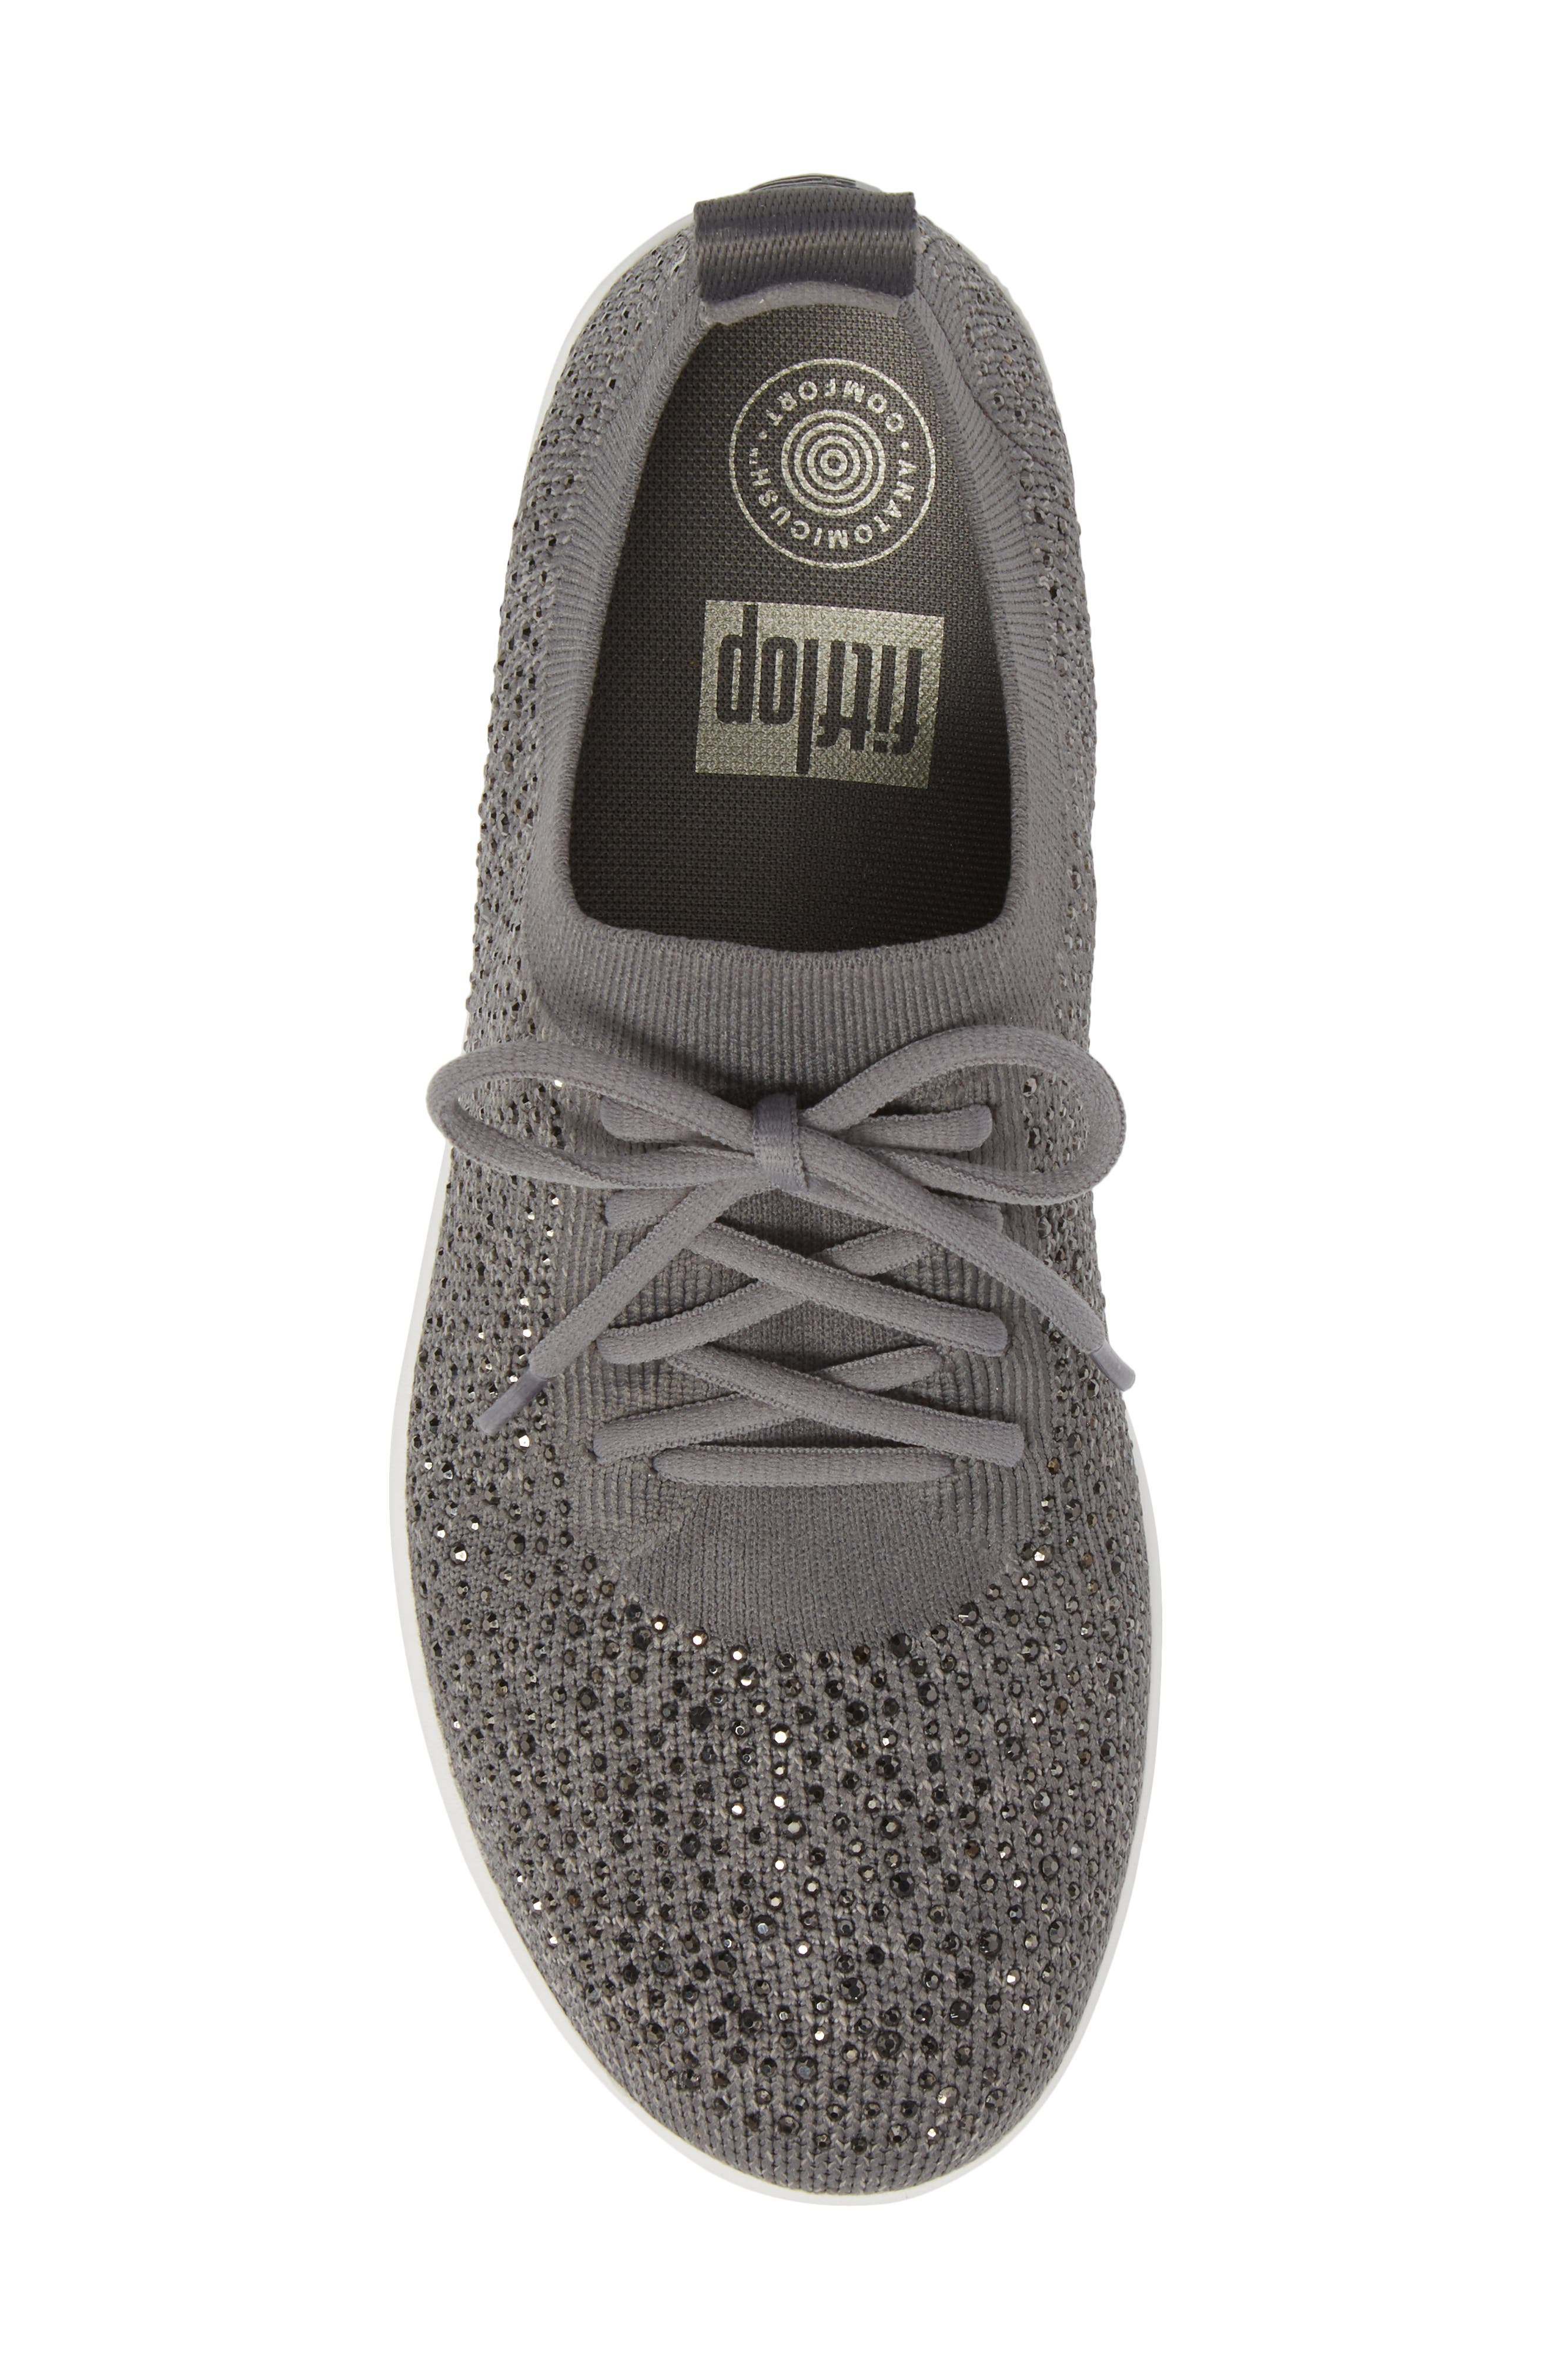 FITFLOP, Uberknit<sup>™</sup> F-Sporty Sneaker, Alternate thumbnail 5, color, CHARCOAL/ DUSTY GREY